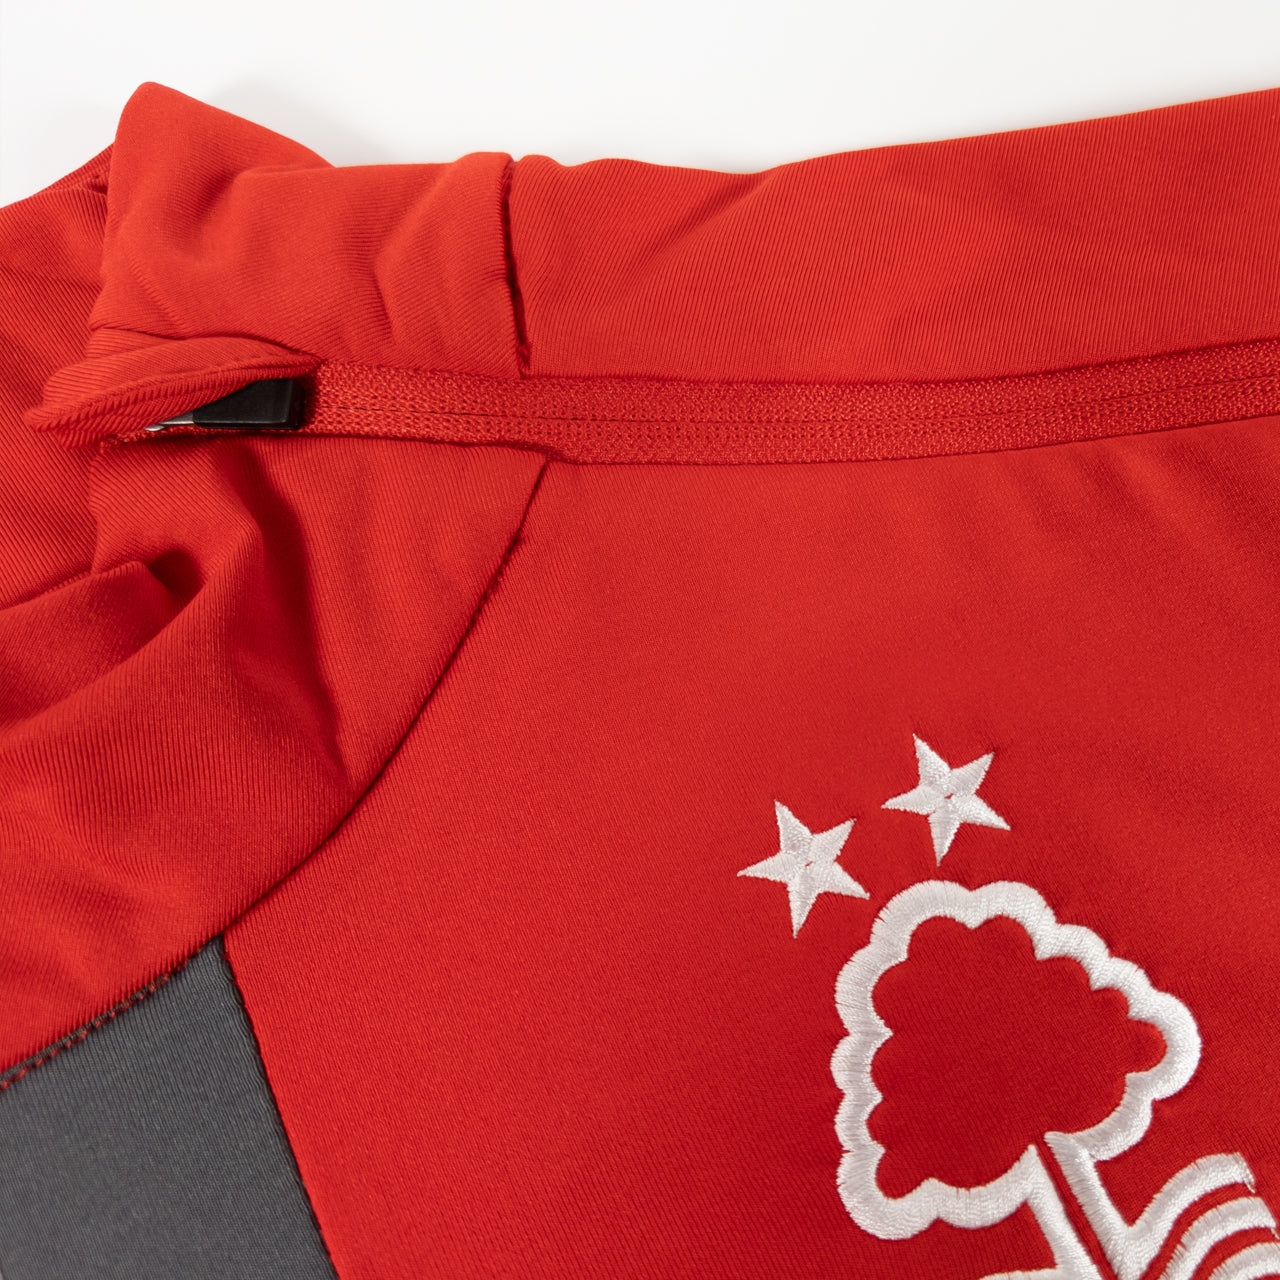 NFFC Mens Player 1/4 Zip Top 19/20